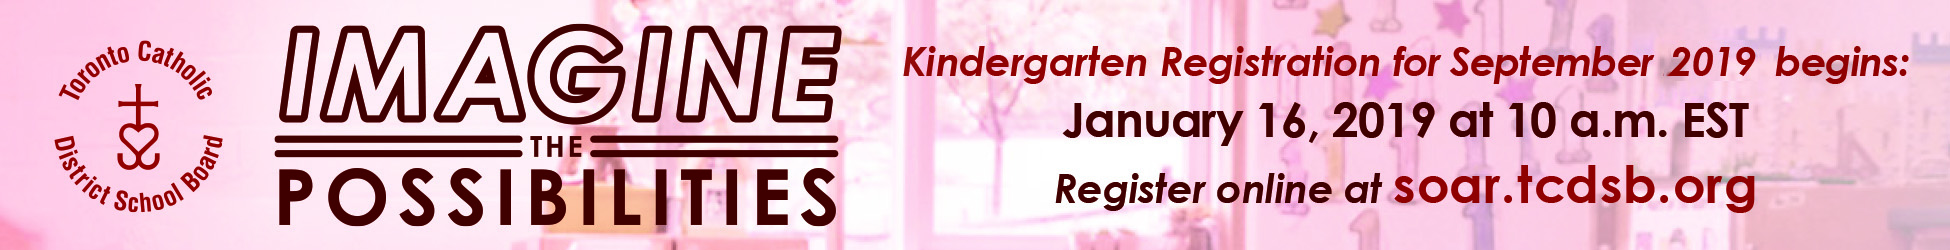 Kindergarten Registration for September 2019 begins January 16, 2019.